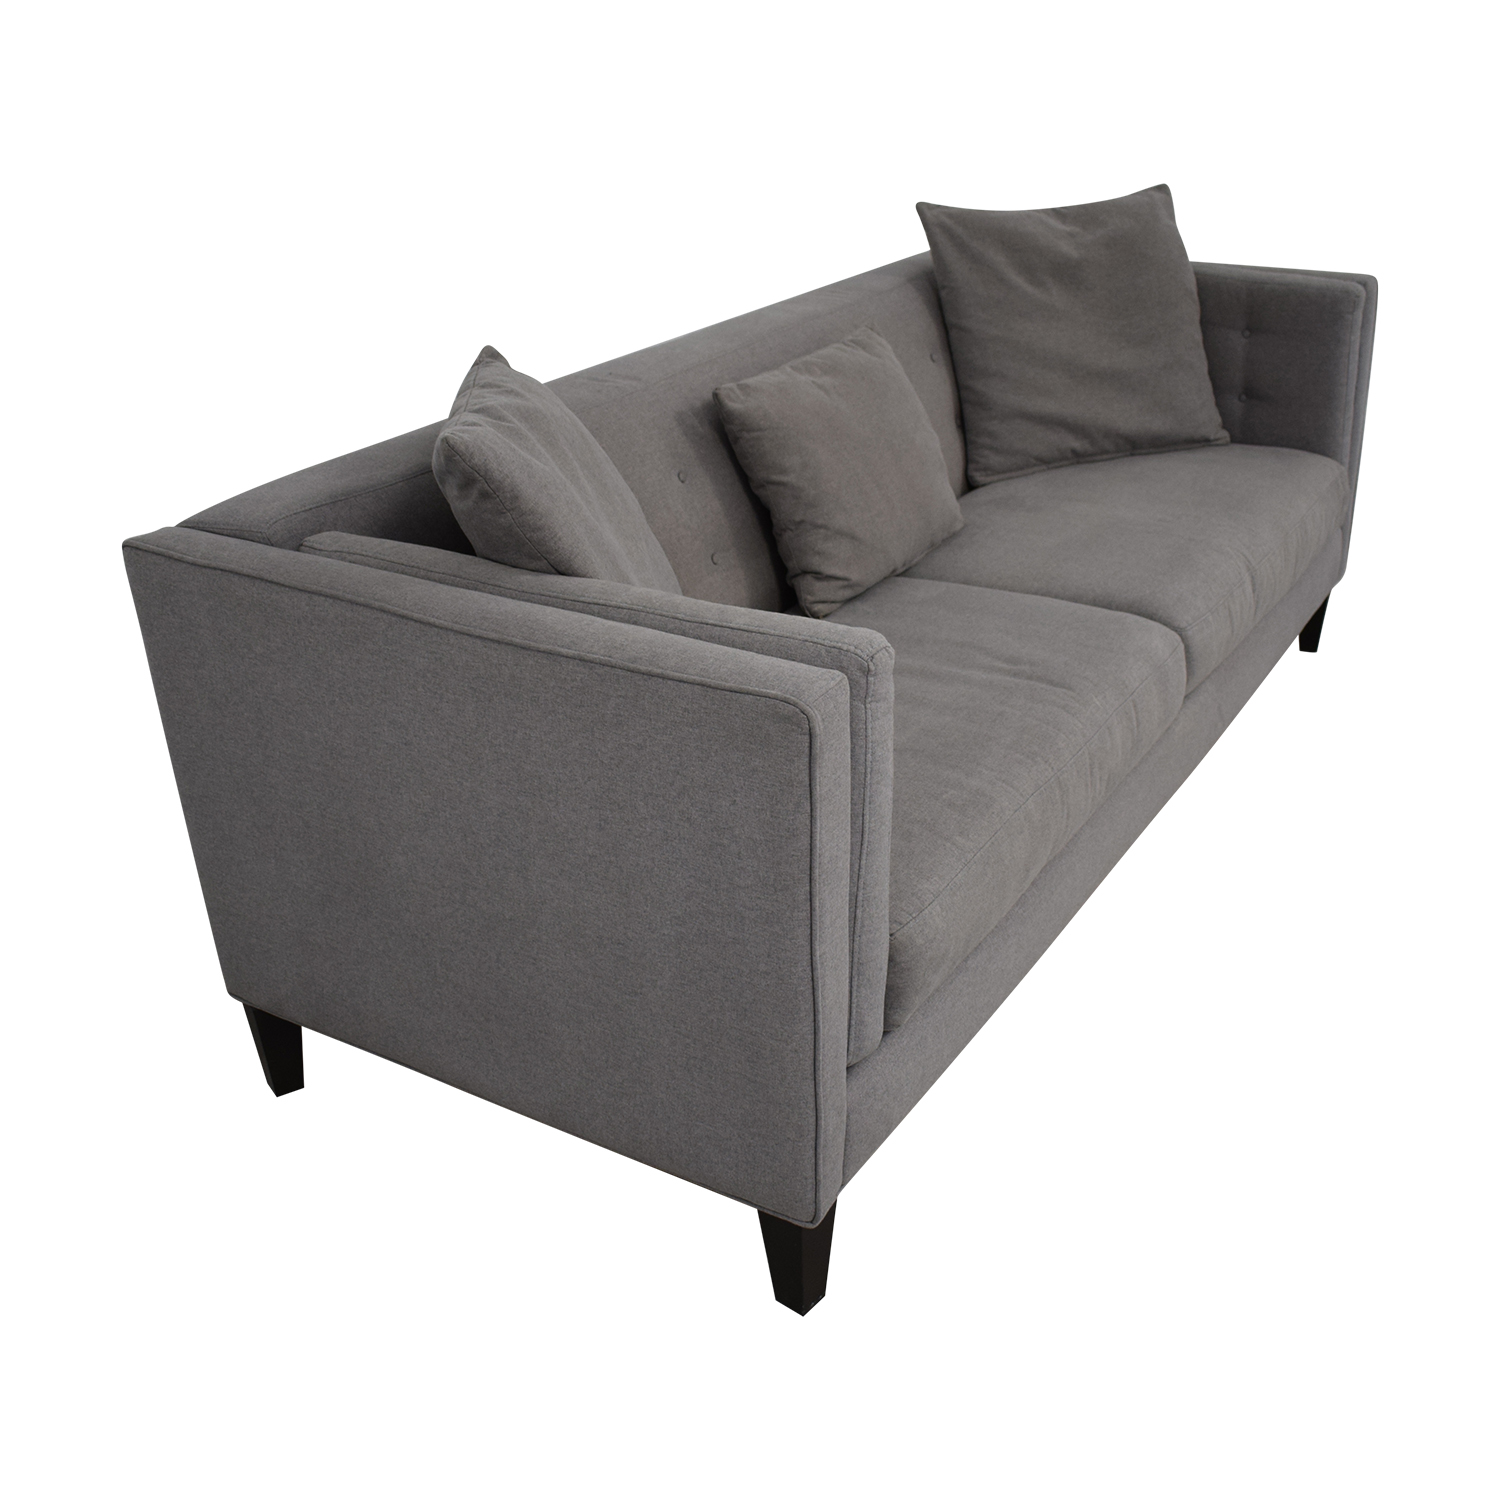 Macy's Braylei Fabric Track Arm Sofa for sale